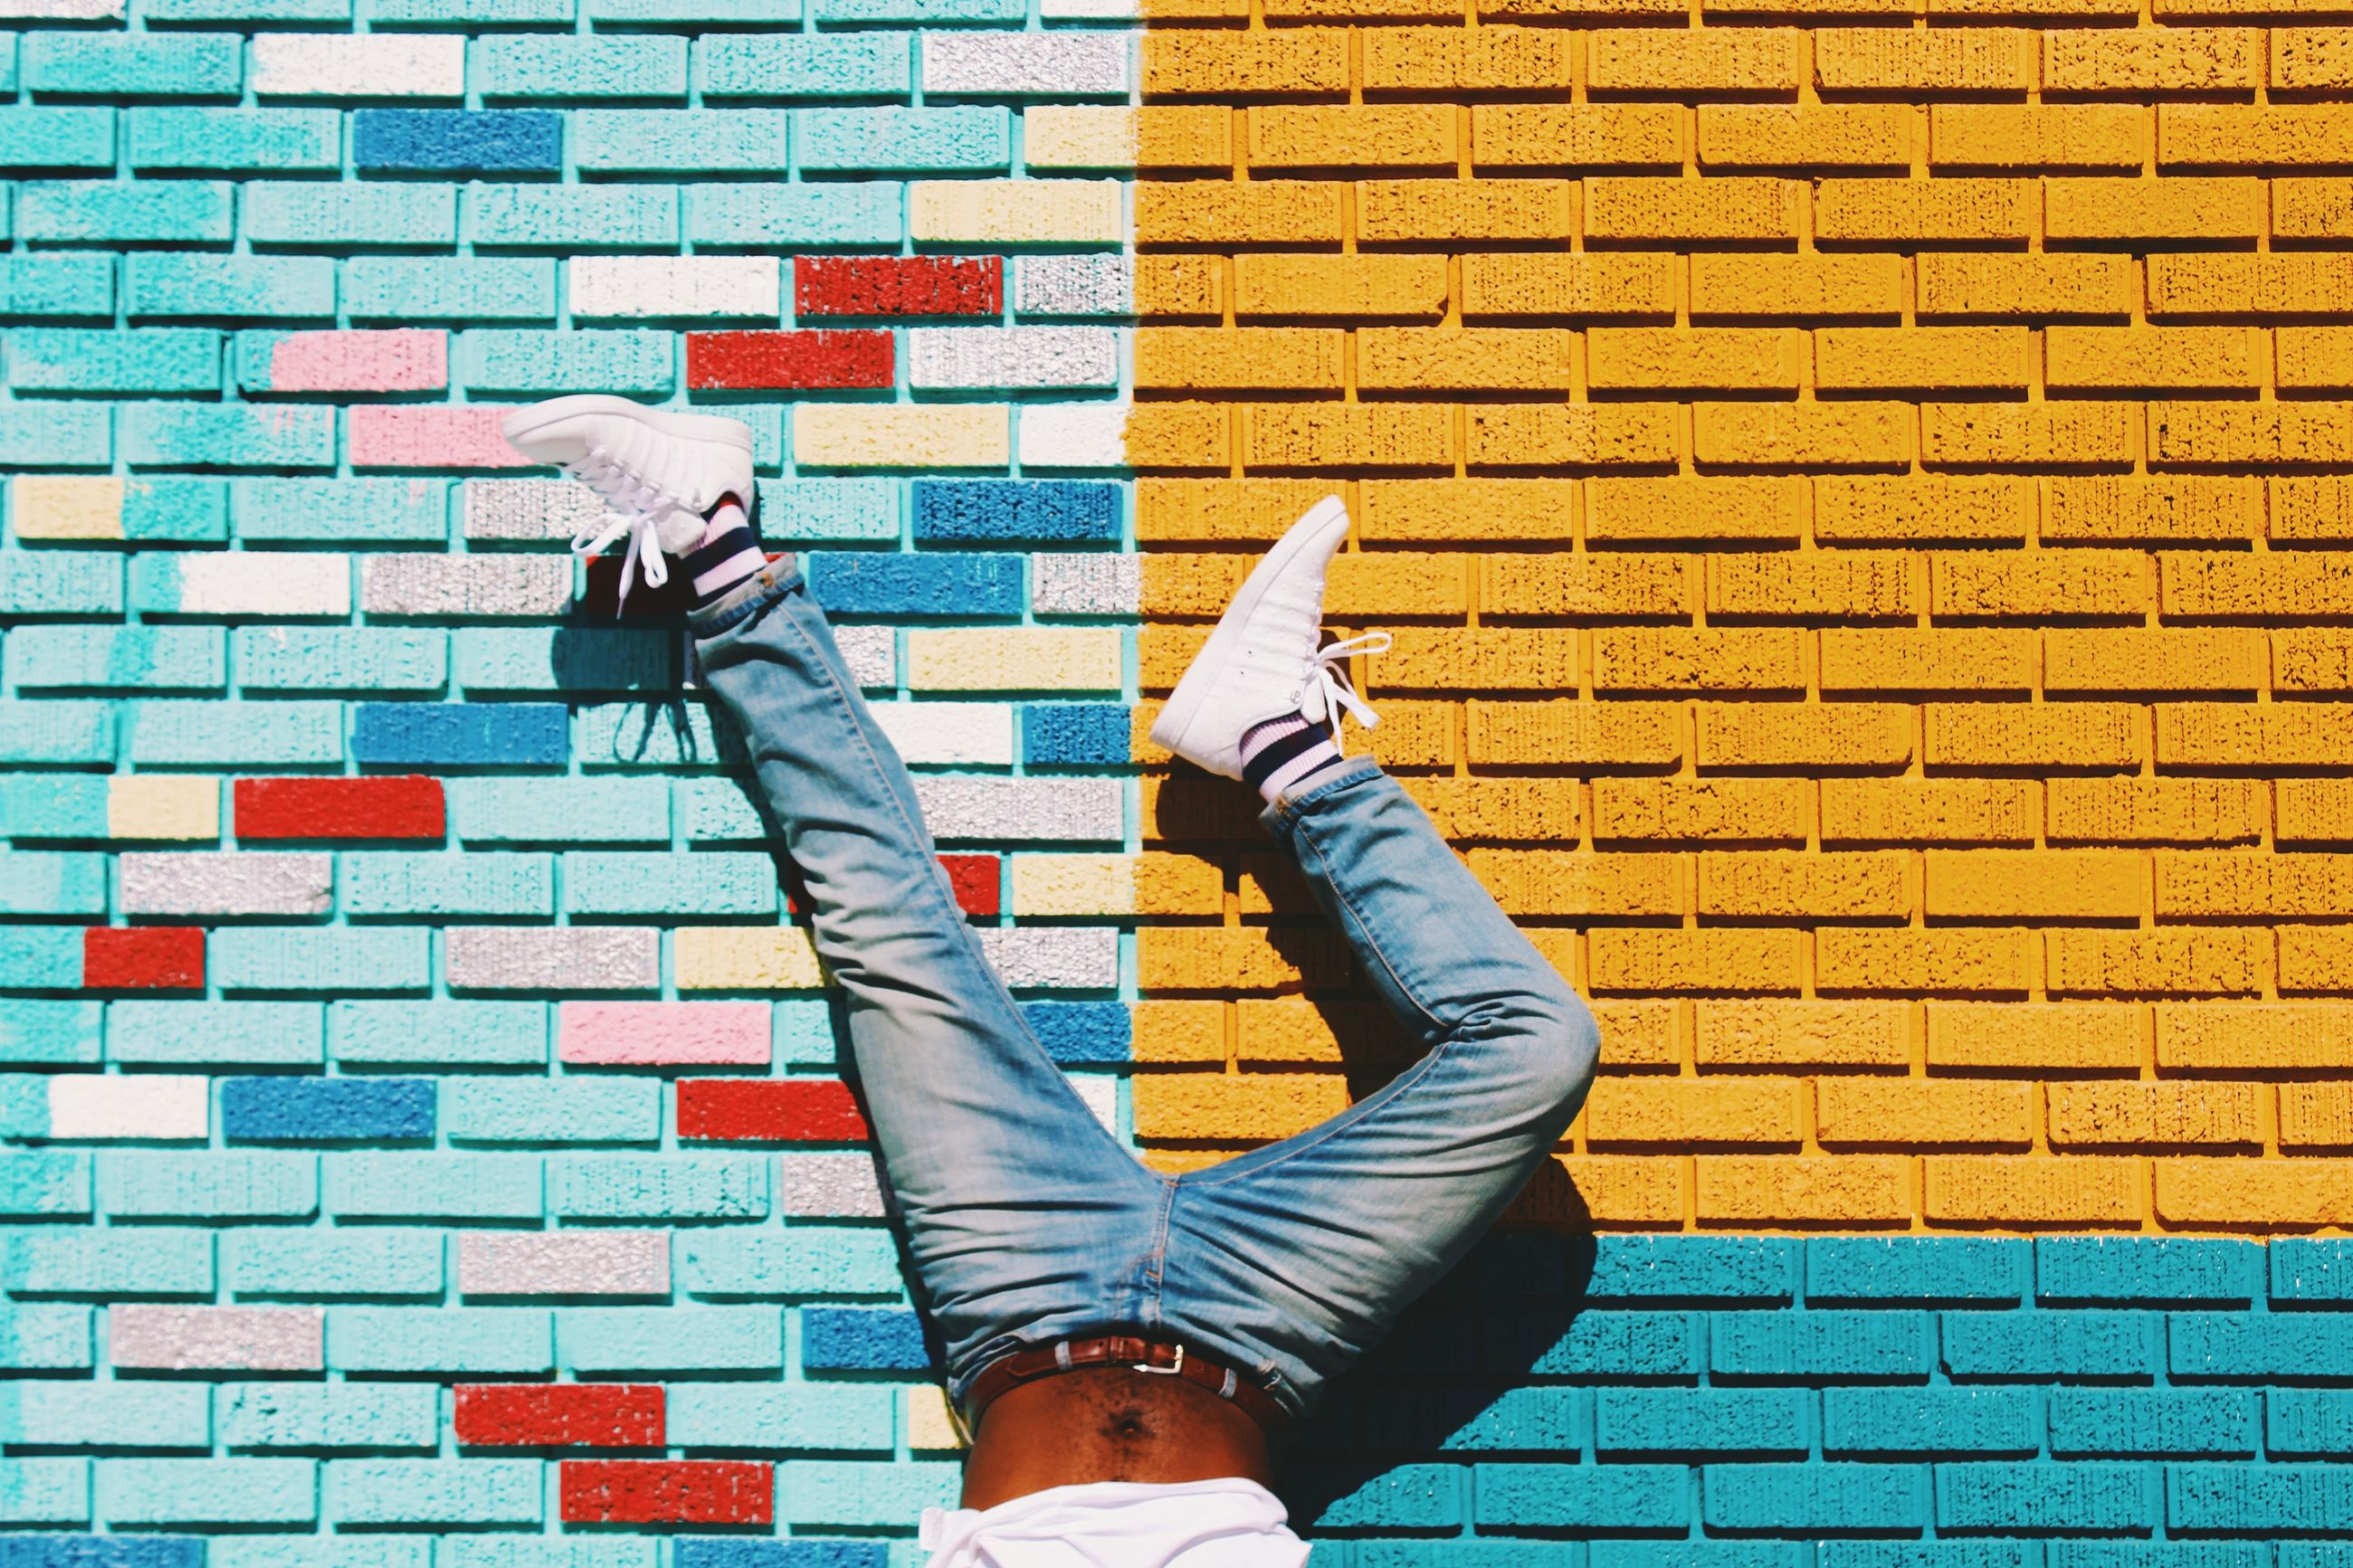 wall - building feature, architecture, yellow, built structure, building exterior, brick wall, pattern, wall, blue, orange color, day, multi colored, tile, part of, lifestyles, low section, window